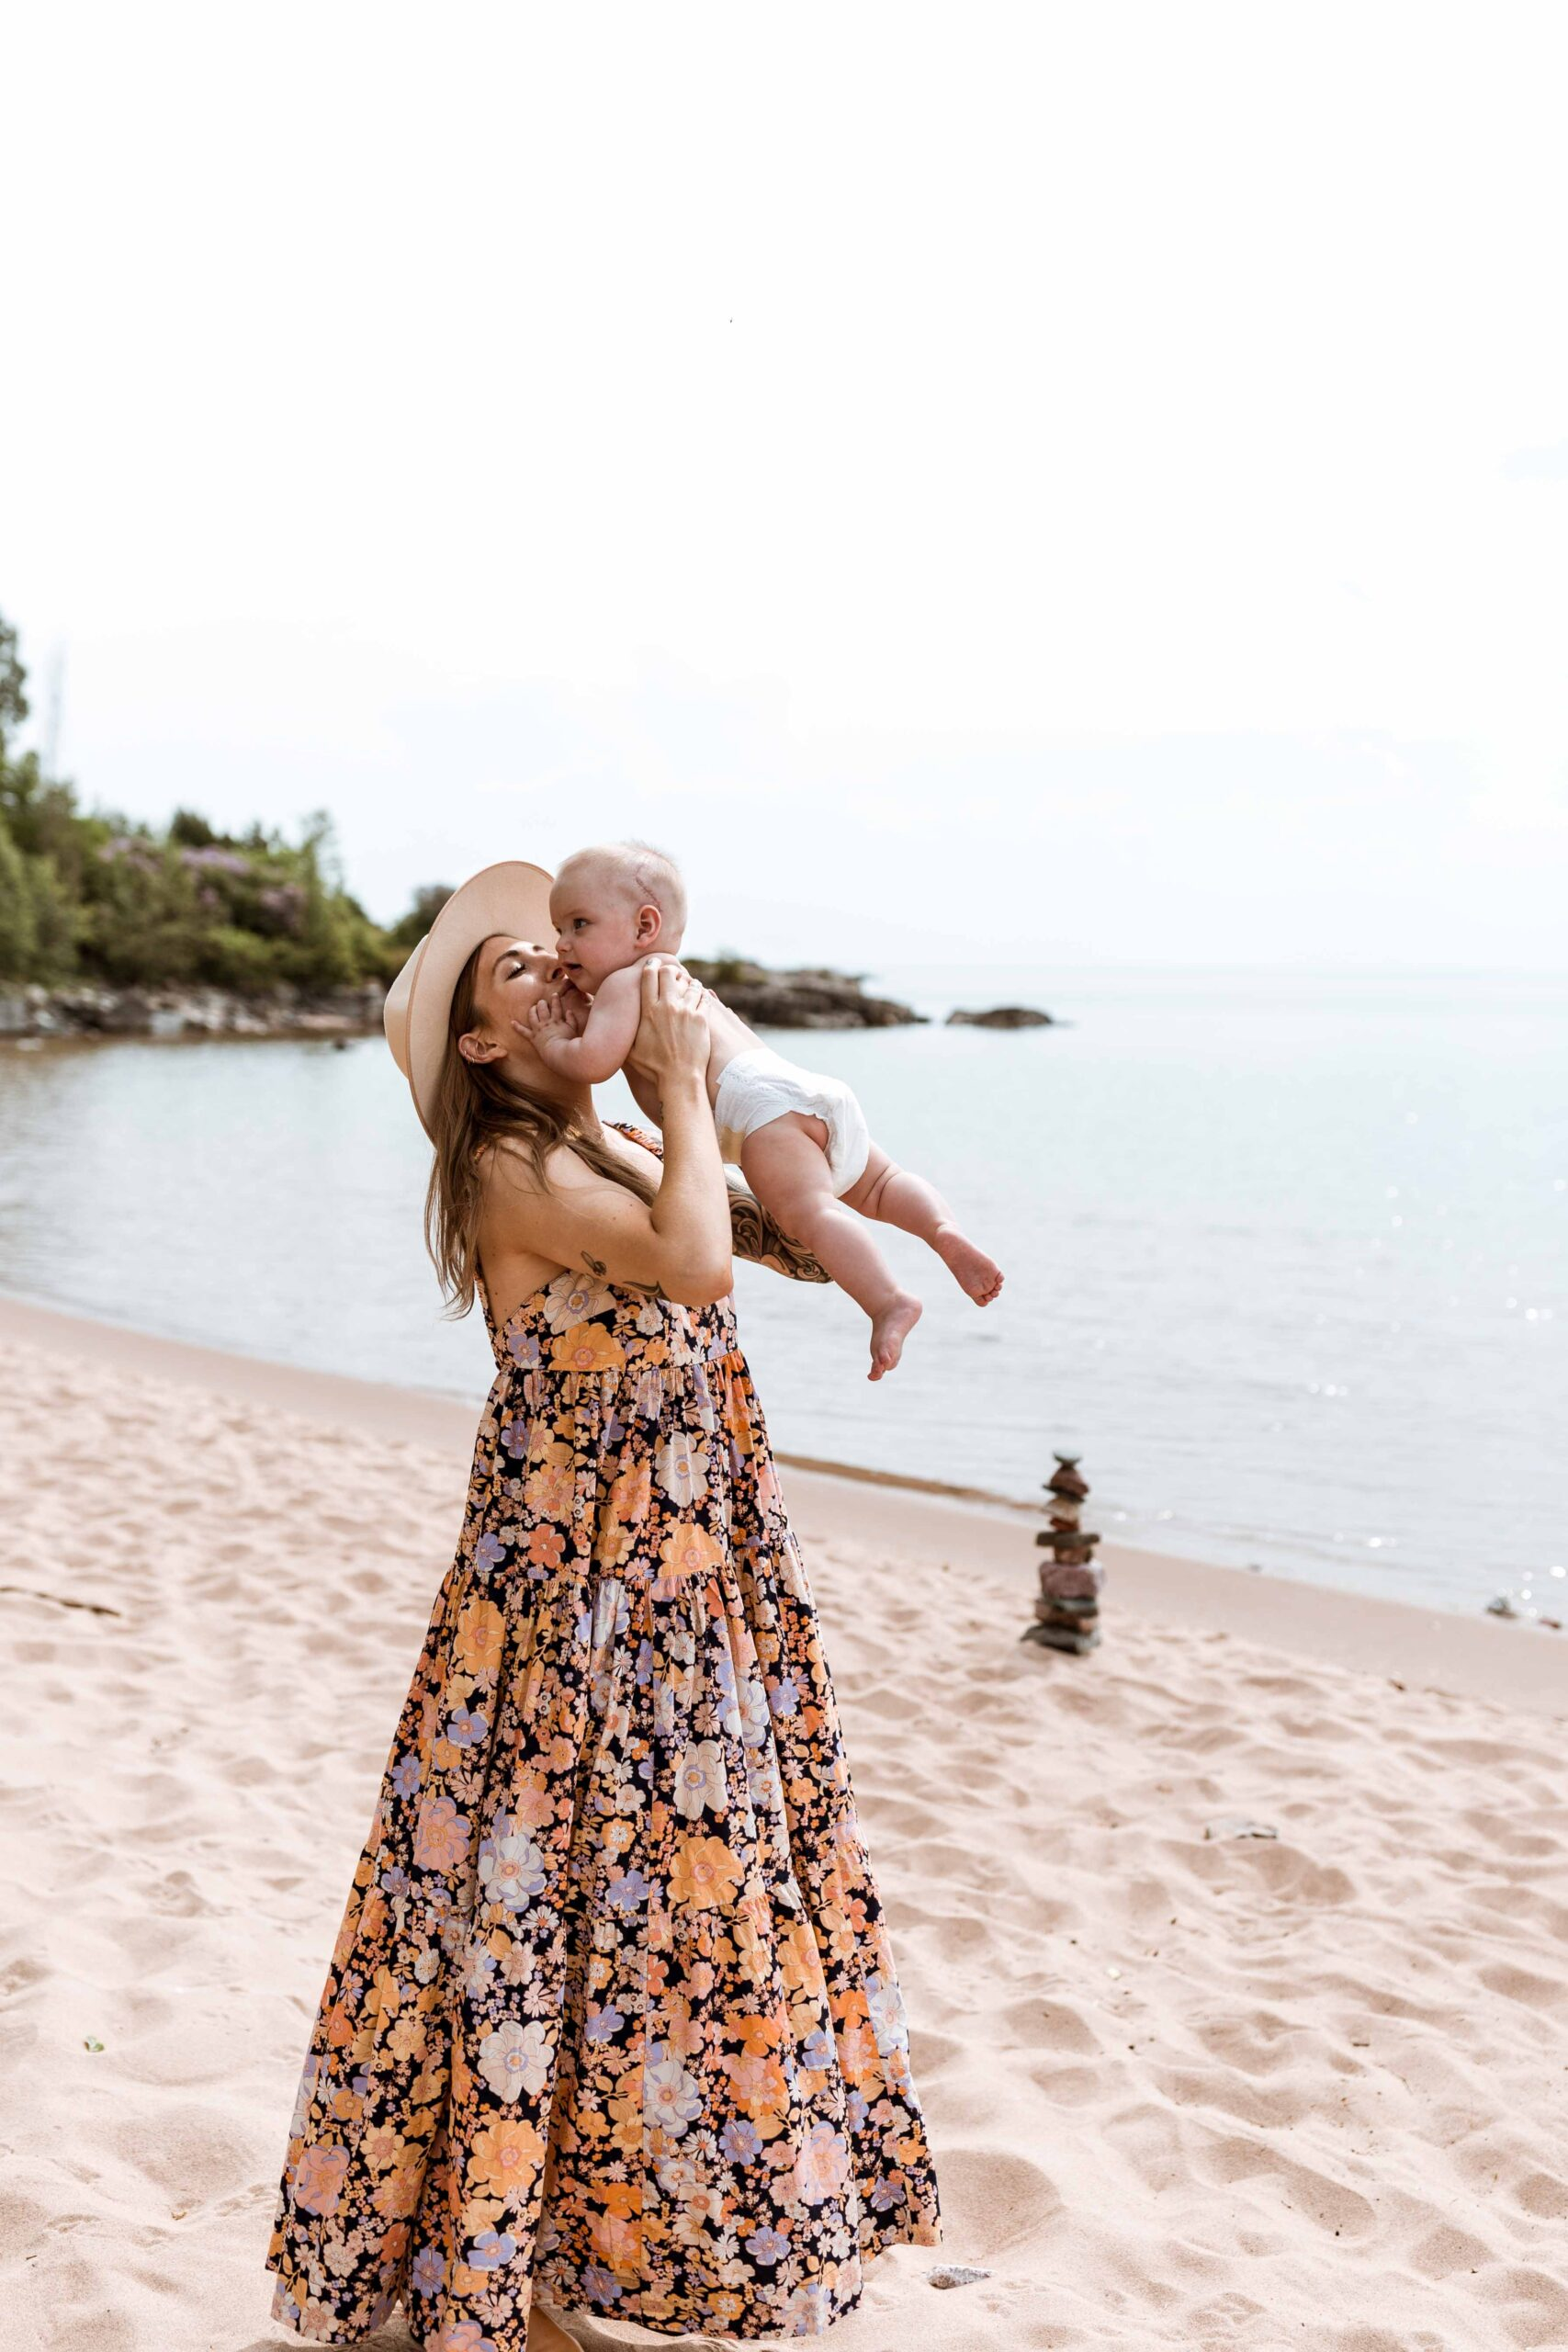 Like most Free People dresses, this 1 is perfectly bohemian, with a relaxed fit, plus a lot of fabric in order to get that swishy, swooshy, flowy goodness.